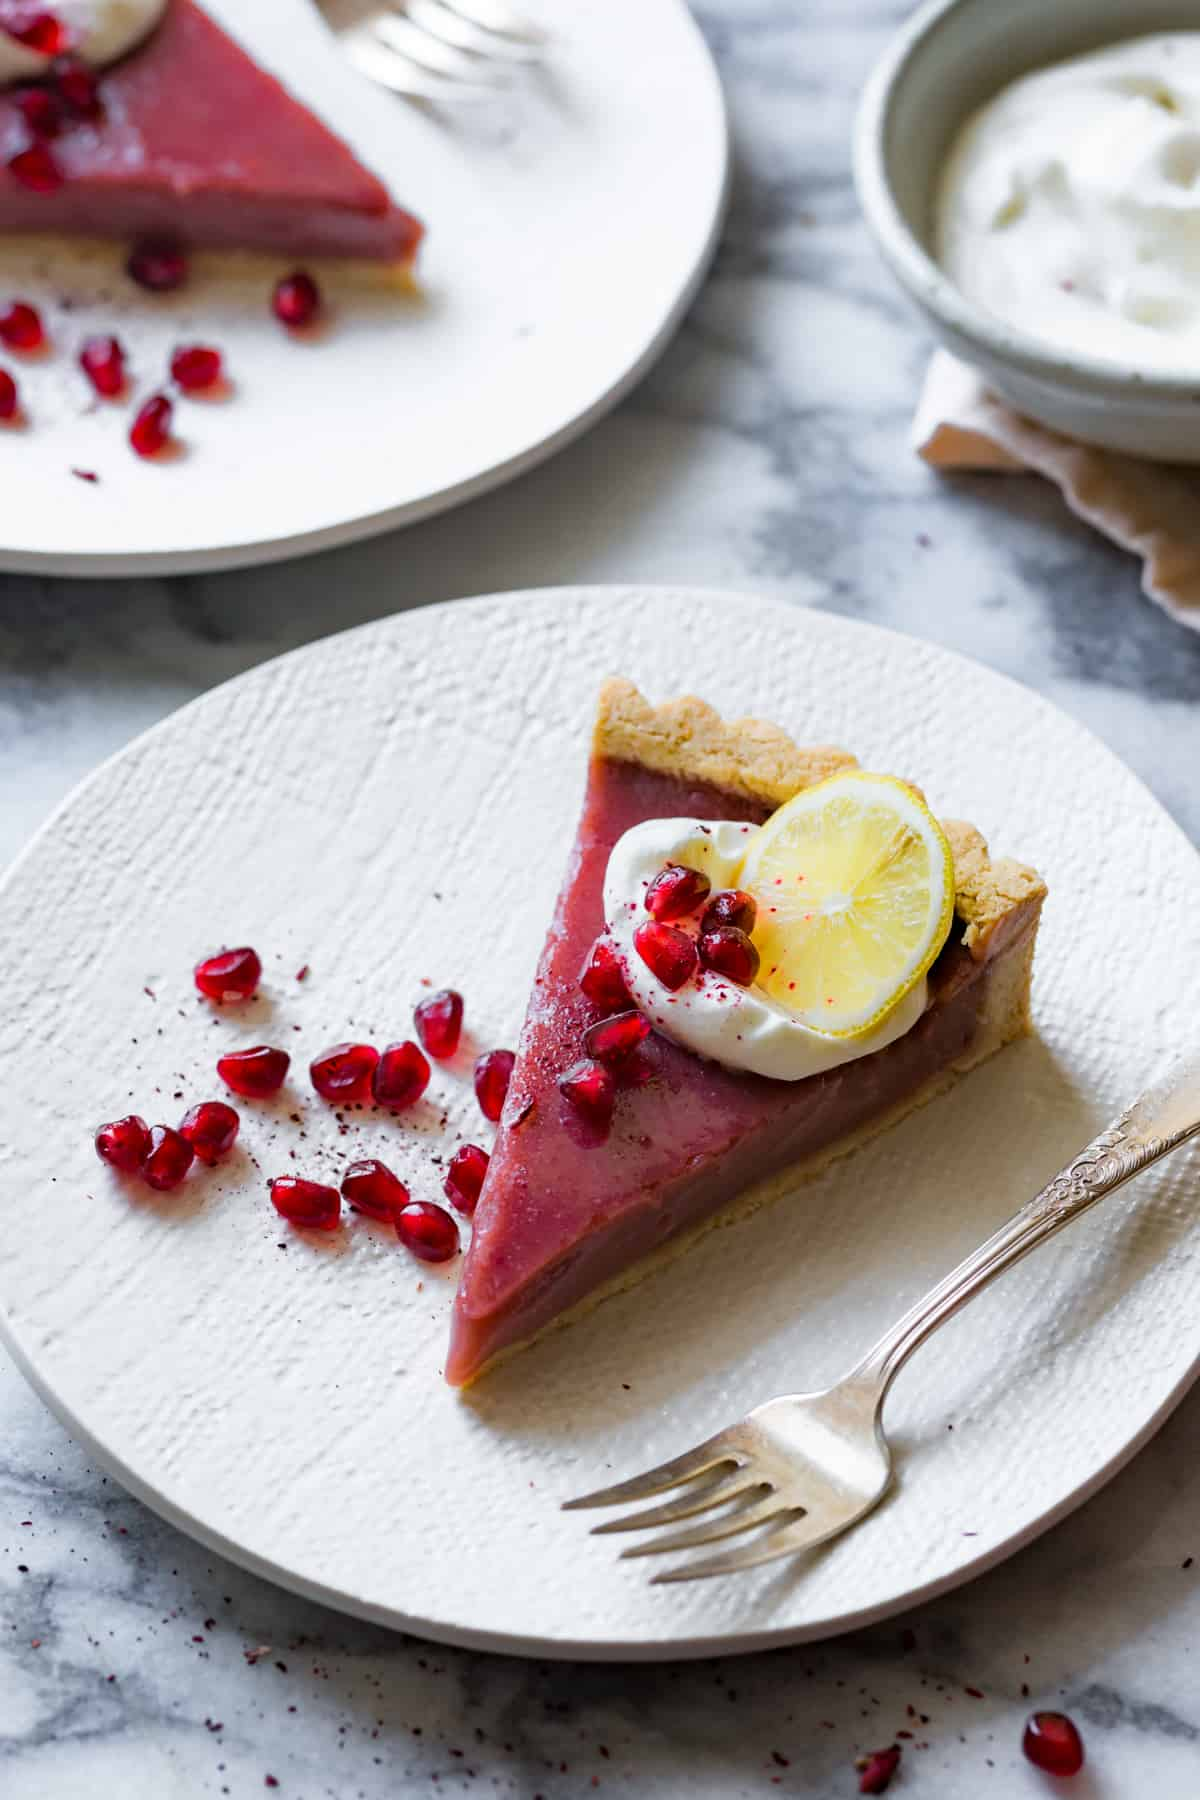 Pomegranate Tart with Hibiscus, Lemon, and Almond Flour Crust {gluten-free}